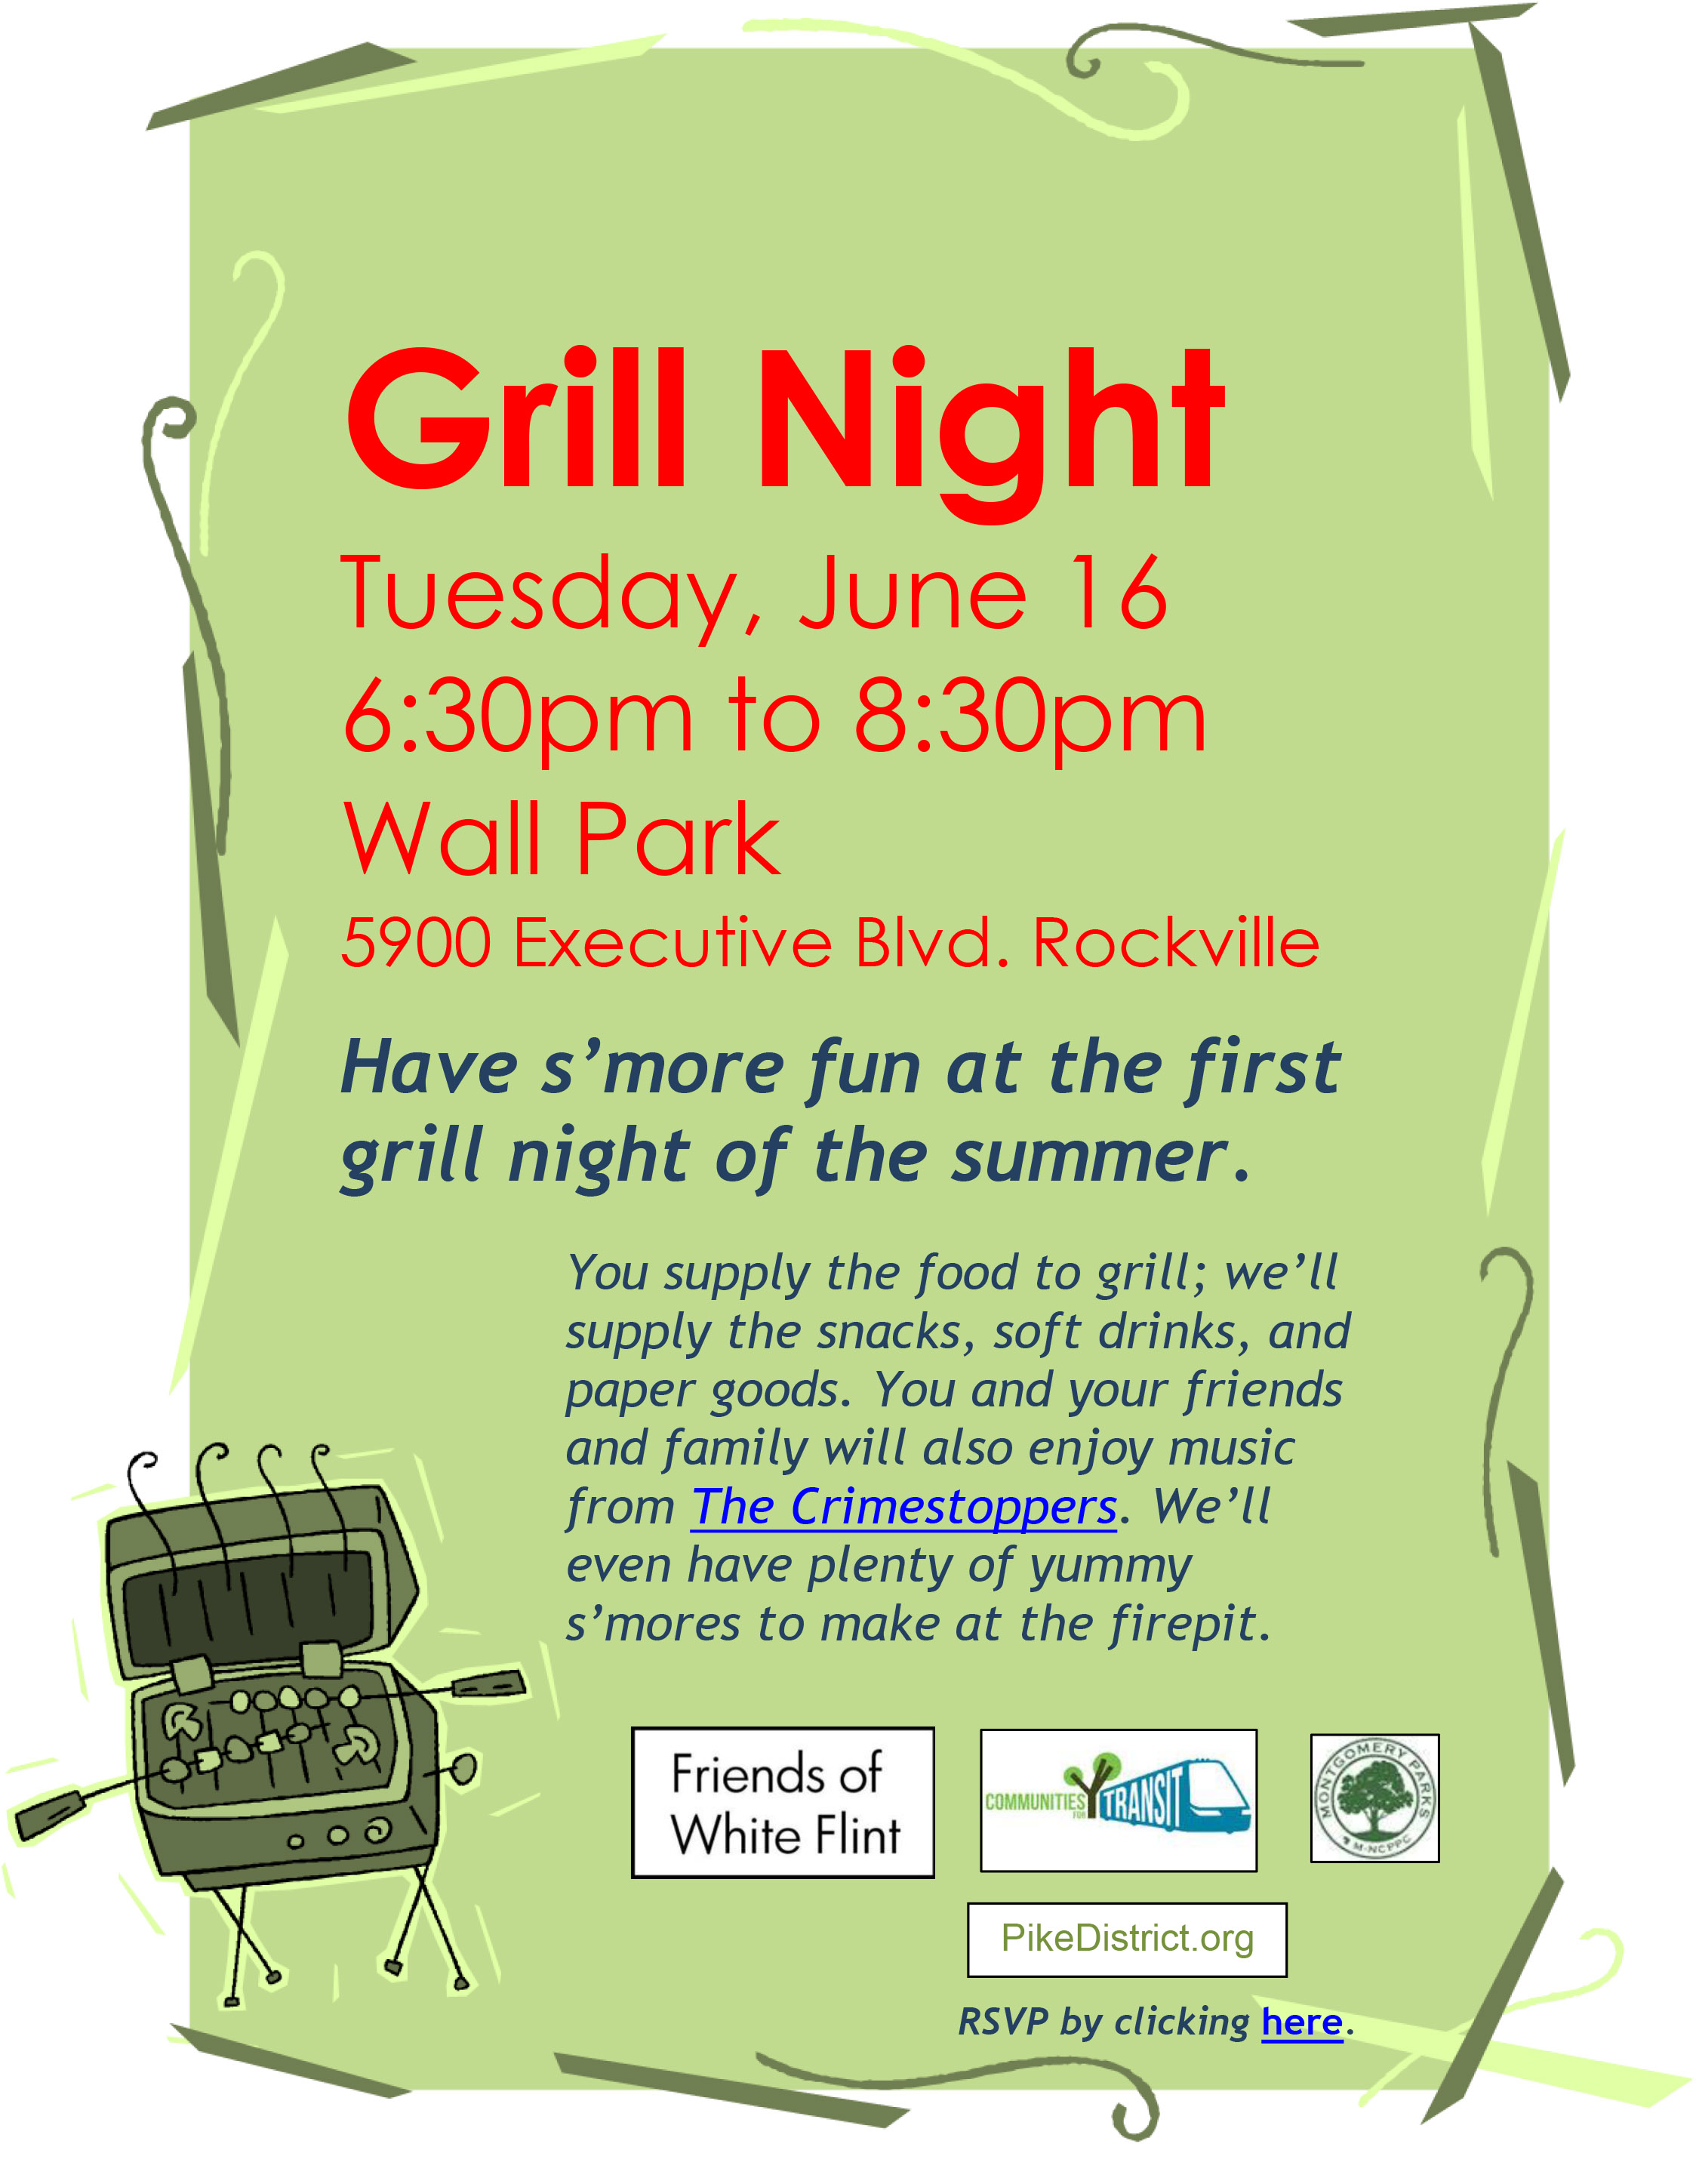 Grill Night Wall Park